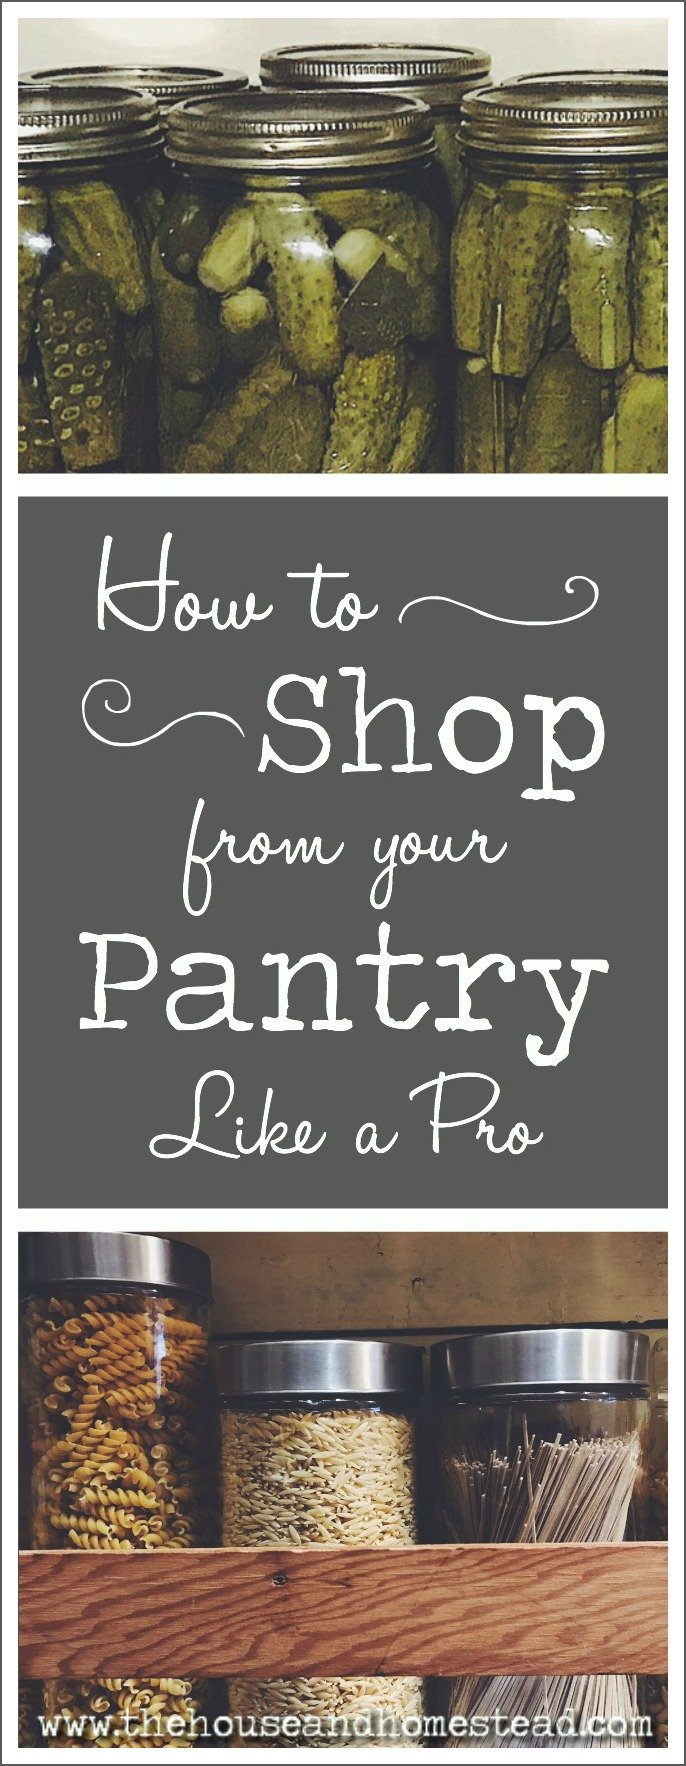 Whether you're looking to get organized, save money or simply get creative with your meal planning, the first place you should turn to is your own home pantry. Here I share the tried and true planning and organization strategies I use to shop from my own pantry and craft meals out of what I already have on hand. With links to FREE fridge, freezer and pantry inventory templates, meal planning printable and downloadable smart shopping list. #pantryinventory #pantryorganization #mealplanning